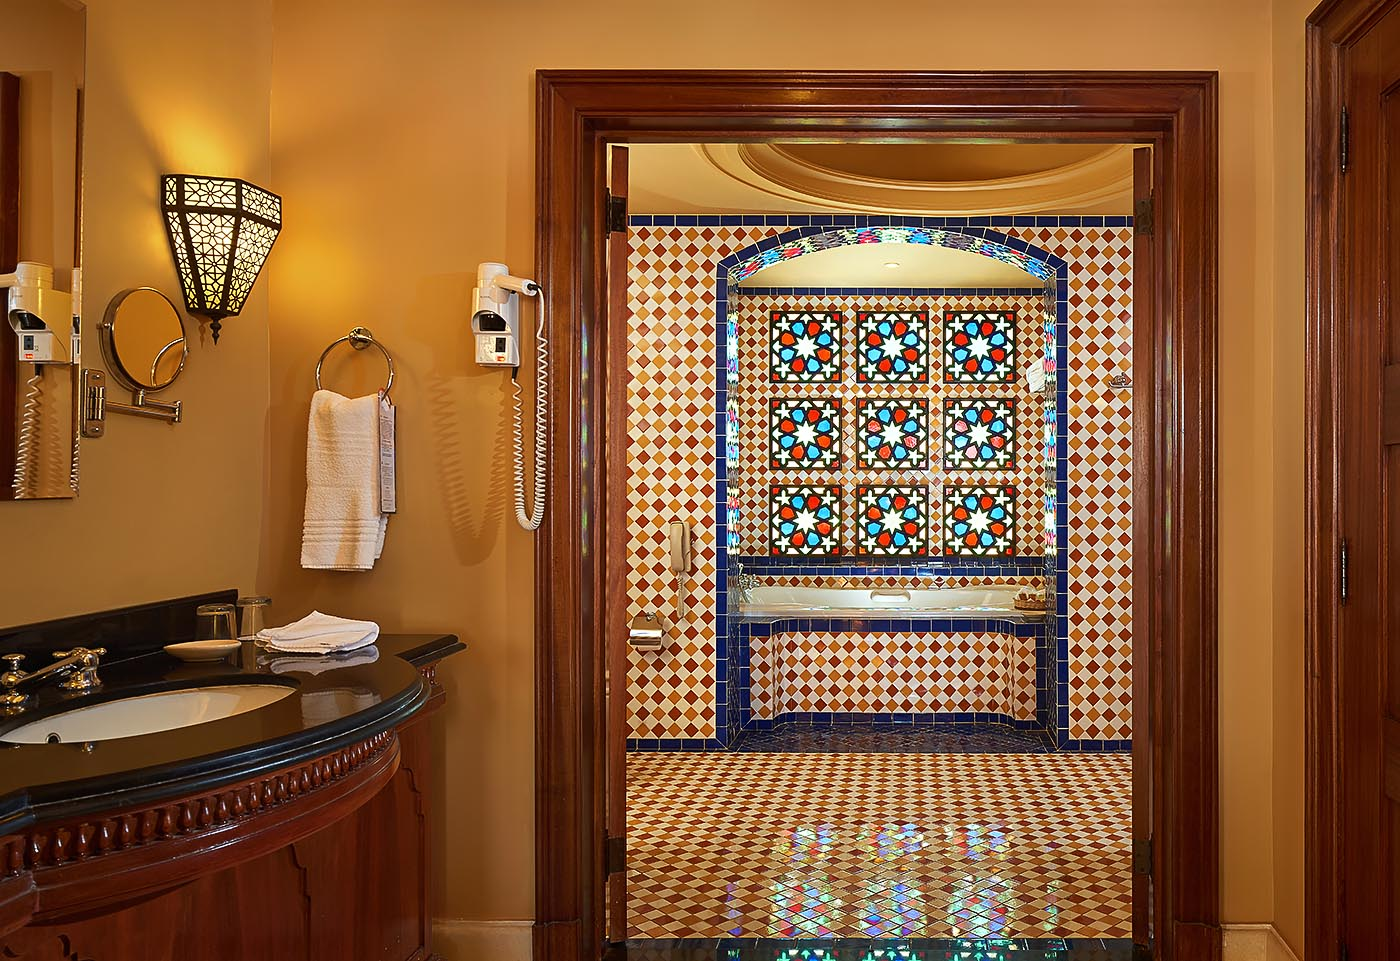 Sofitel Taba heights beach resort Presidential suite bathroom - Mohamed Abdel-Hady photography